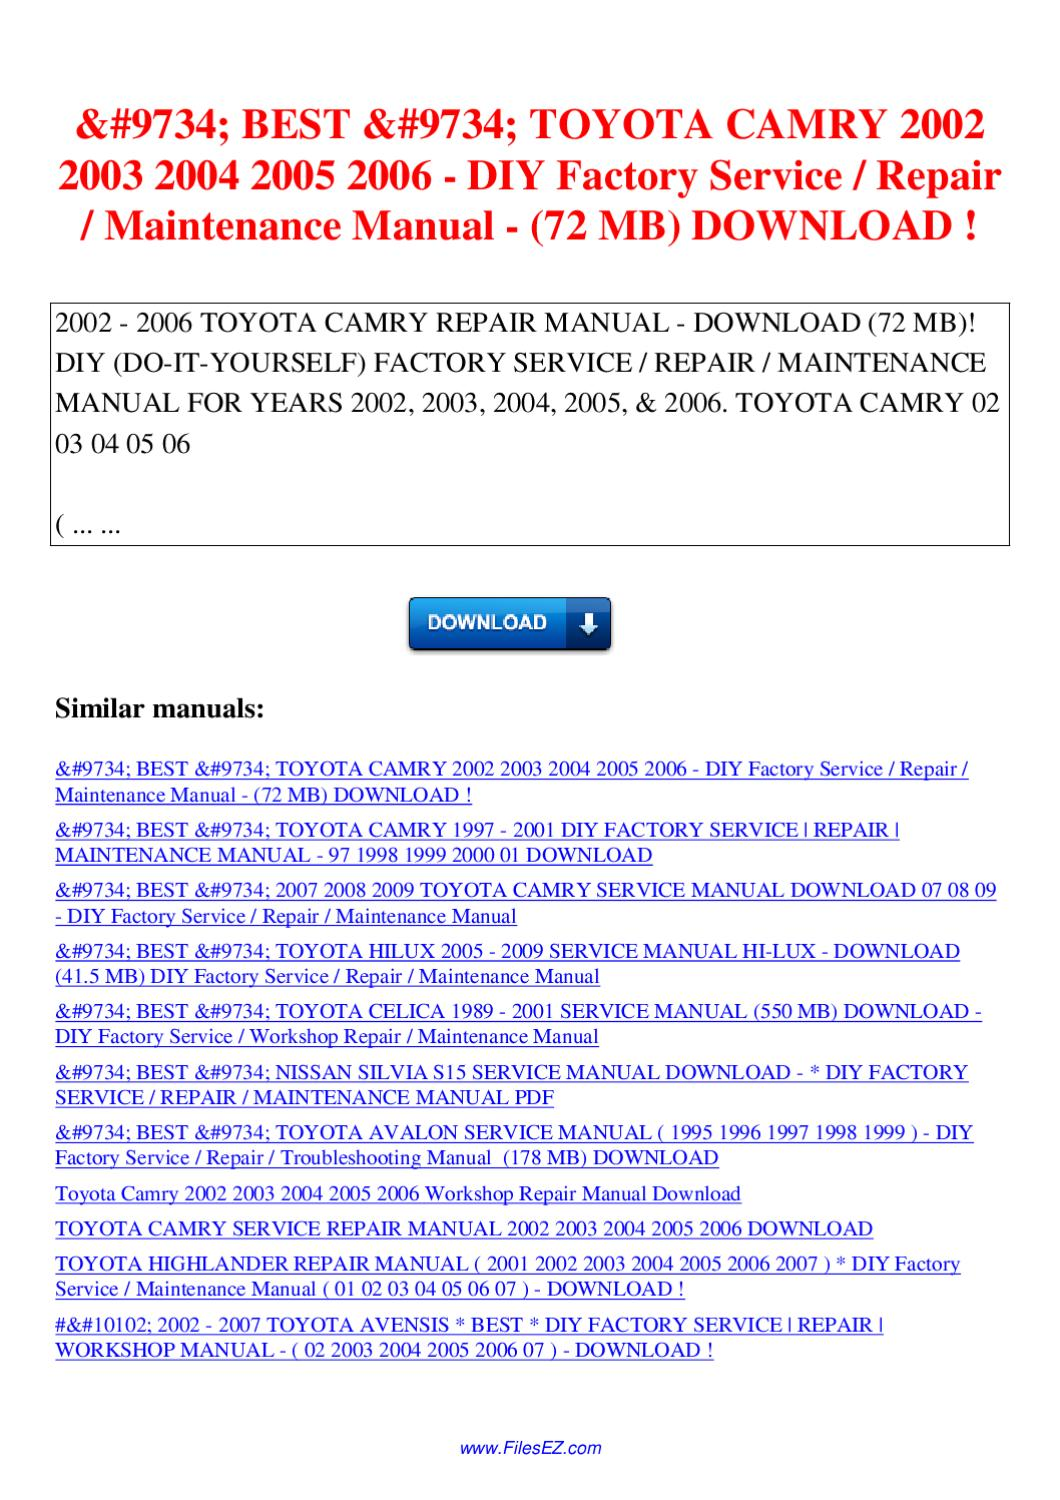 2005 toyota camry manual download